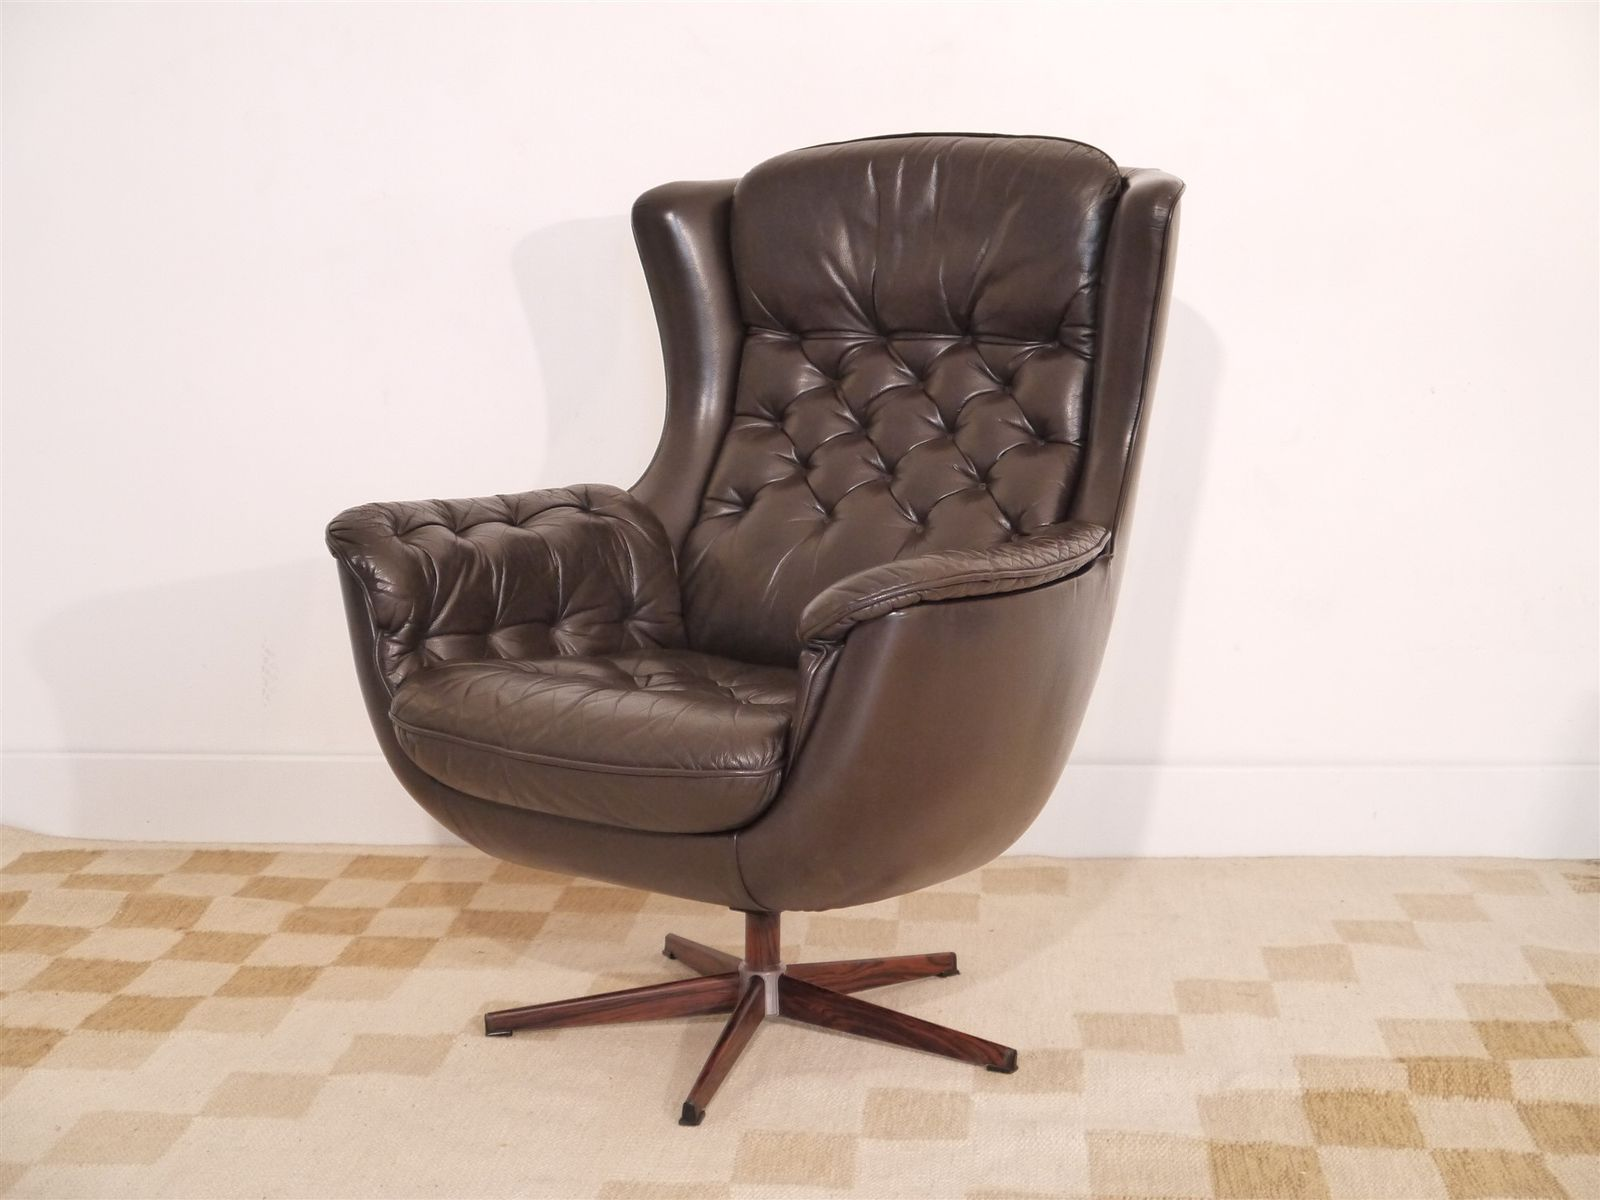 Vintage Danish Leather Swivel Armchair for sale at Pamono